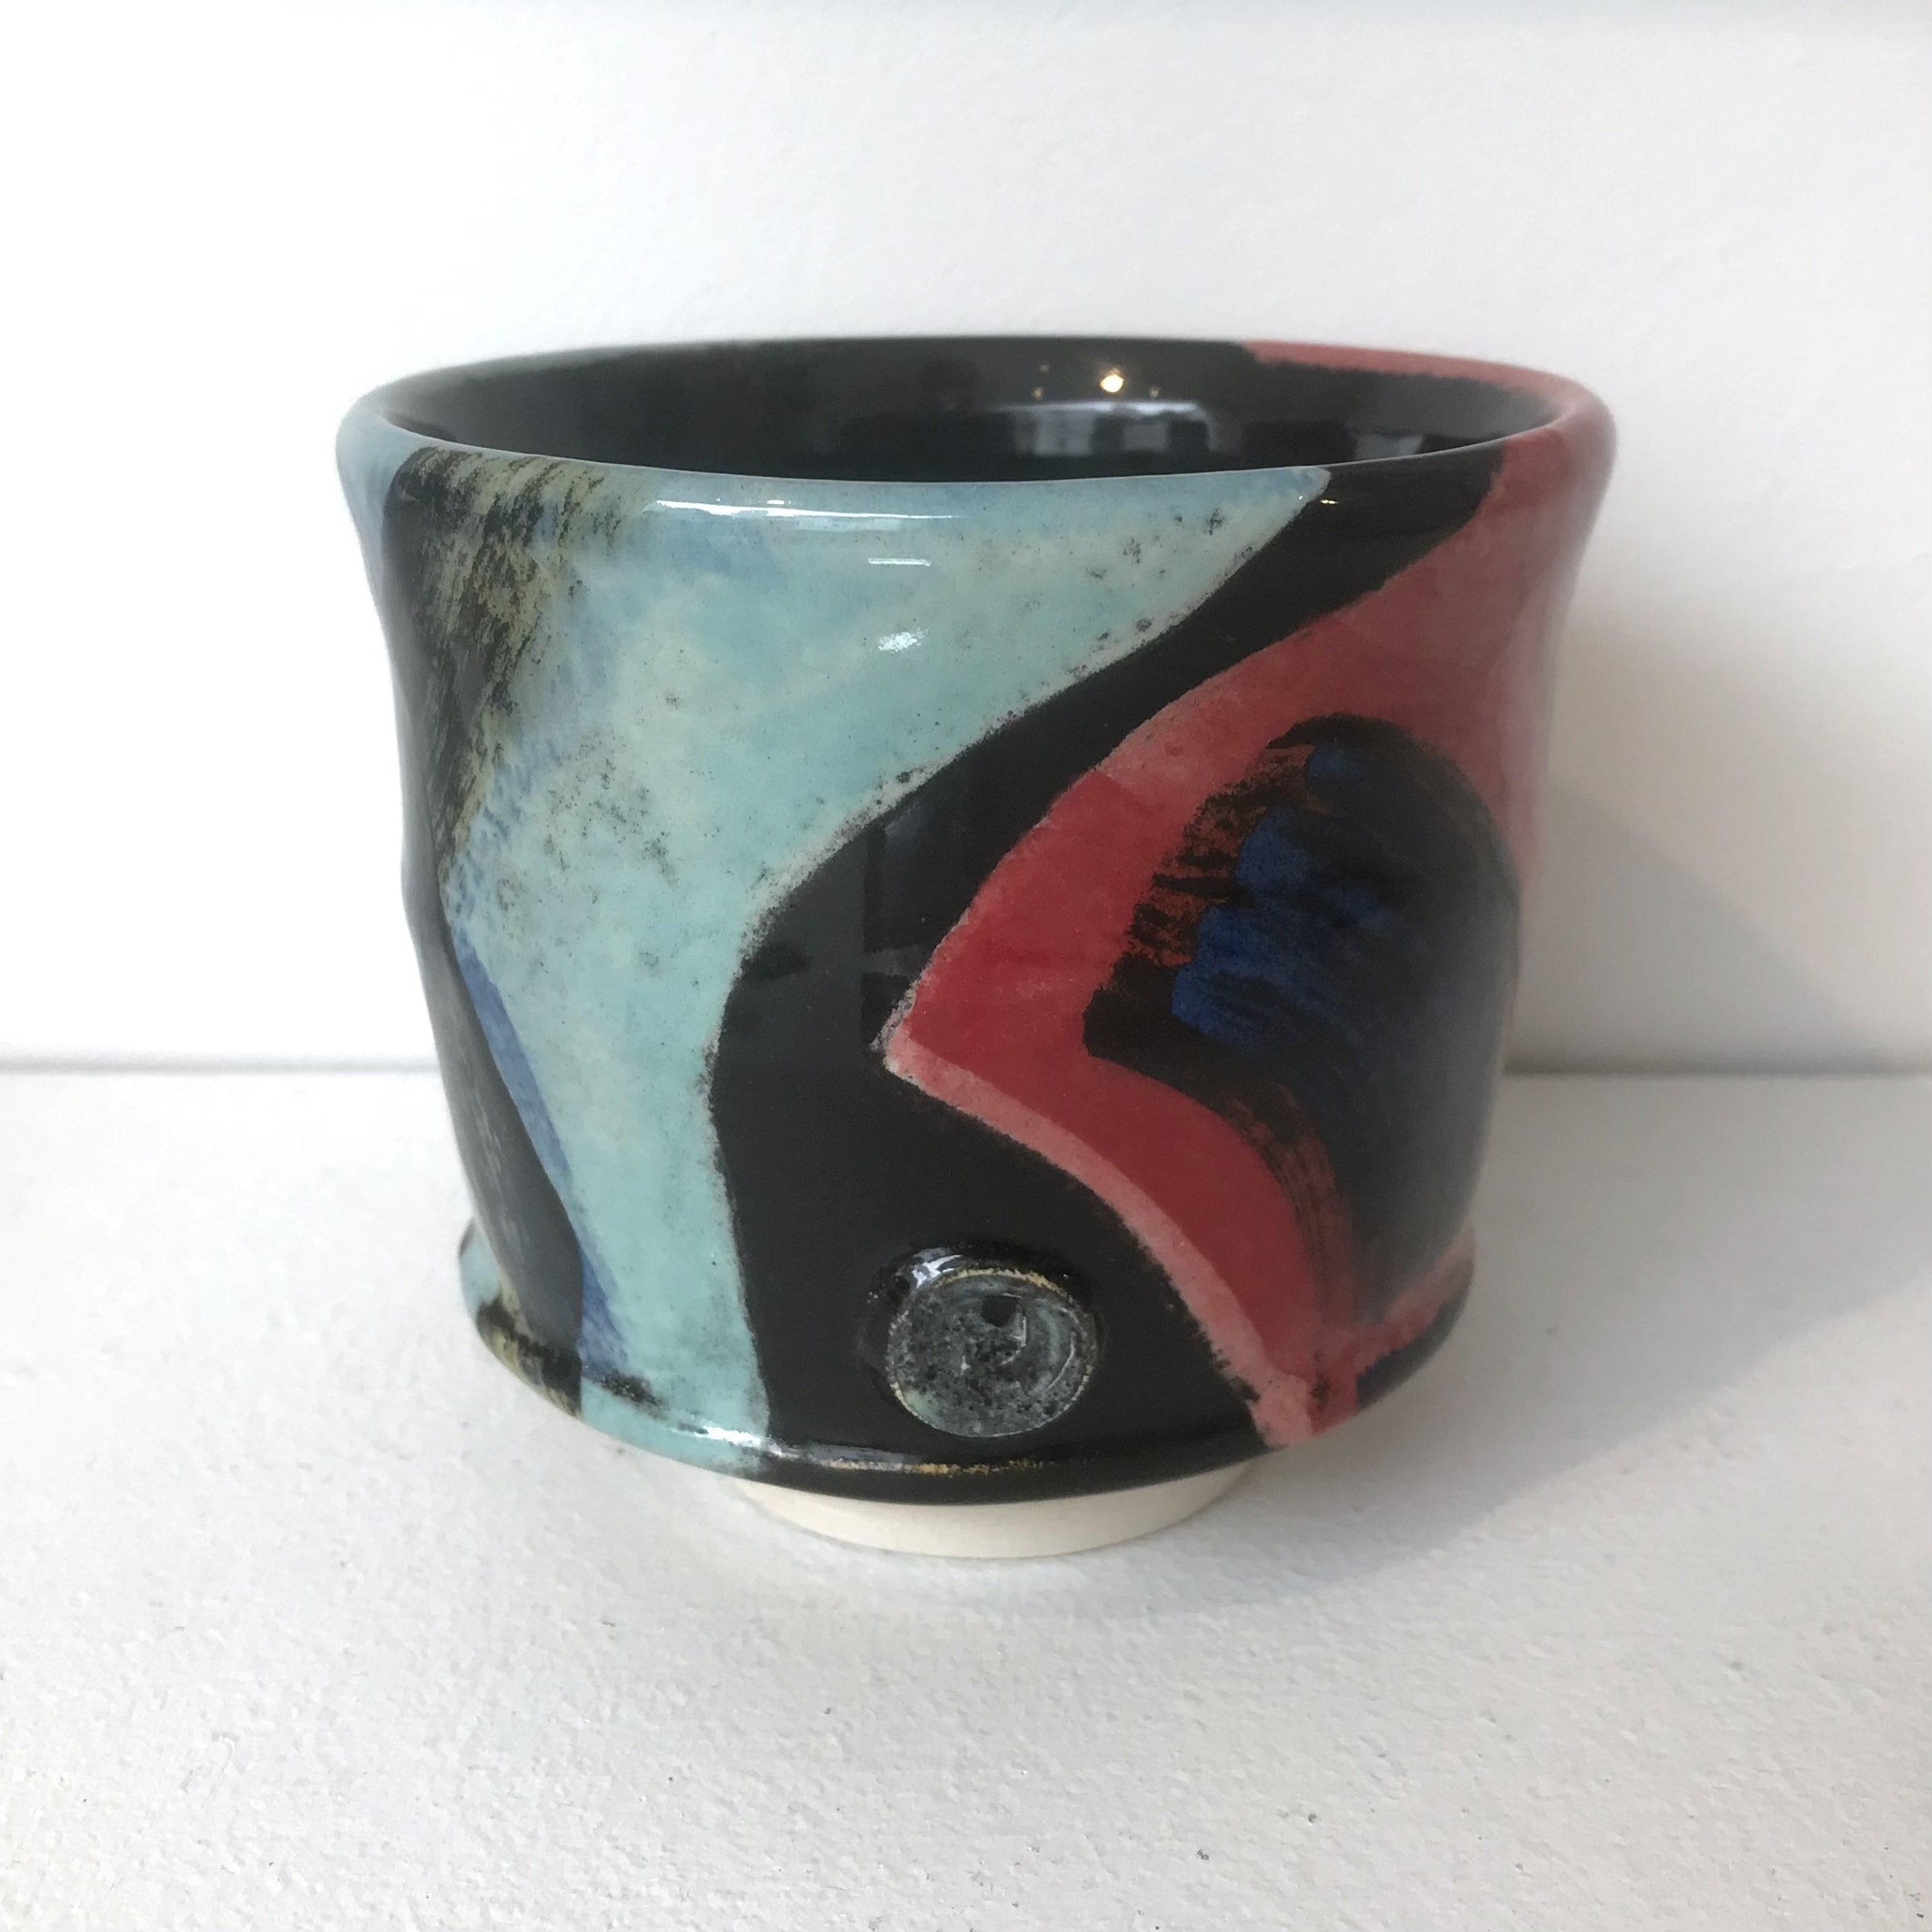 """<span class=""""link fancybox-details-link""""><a href=""""/artists/100-john-pollex/works/7846-john-pollex-tea-bowl-2021/"""">View Detail Page</a></span><div class=""""artist""""><strong>John Pollex</strong></div> <div class=""""title""""><em>Tea Bowl</em>, 2021</div> <div class=""""signed_and_dated"""">impressed with the artist's seal mark 'JP'</div> <div class=""""medium"""">white earthenware decorated with coloured slips</div> <div class=""""dimensions"""">height. 9 cm x diameter. 9.5 cm</div><div class=""""copyright_line"""">Own Art: £8.80 x 10 Months, 0% APR</div>"""